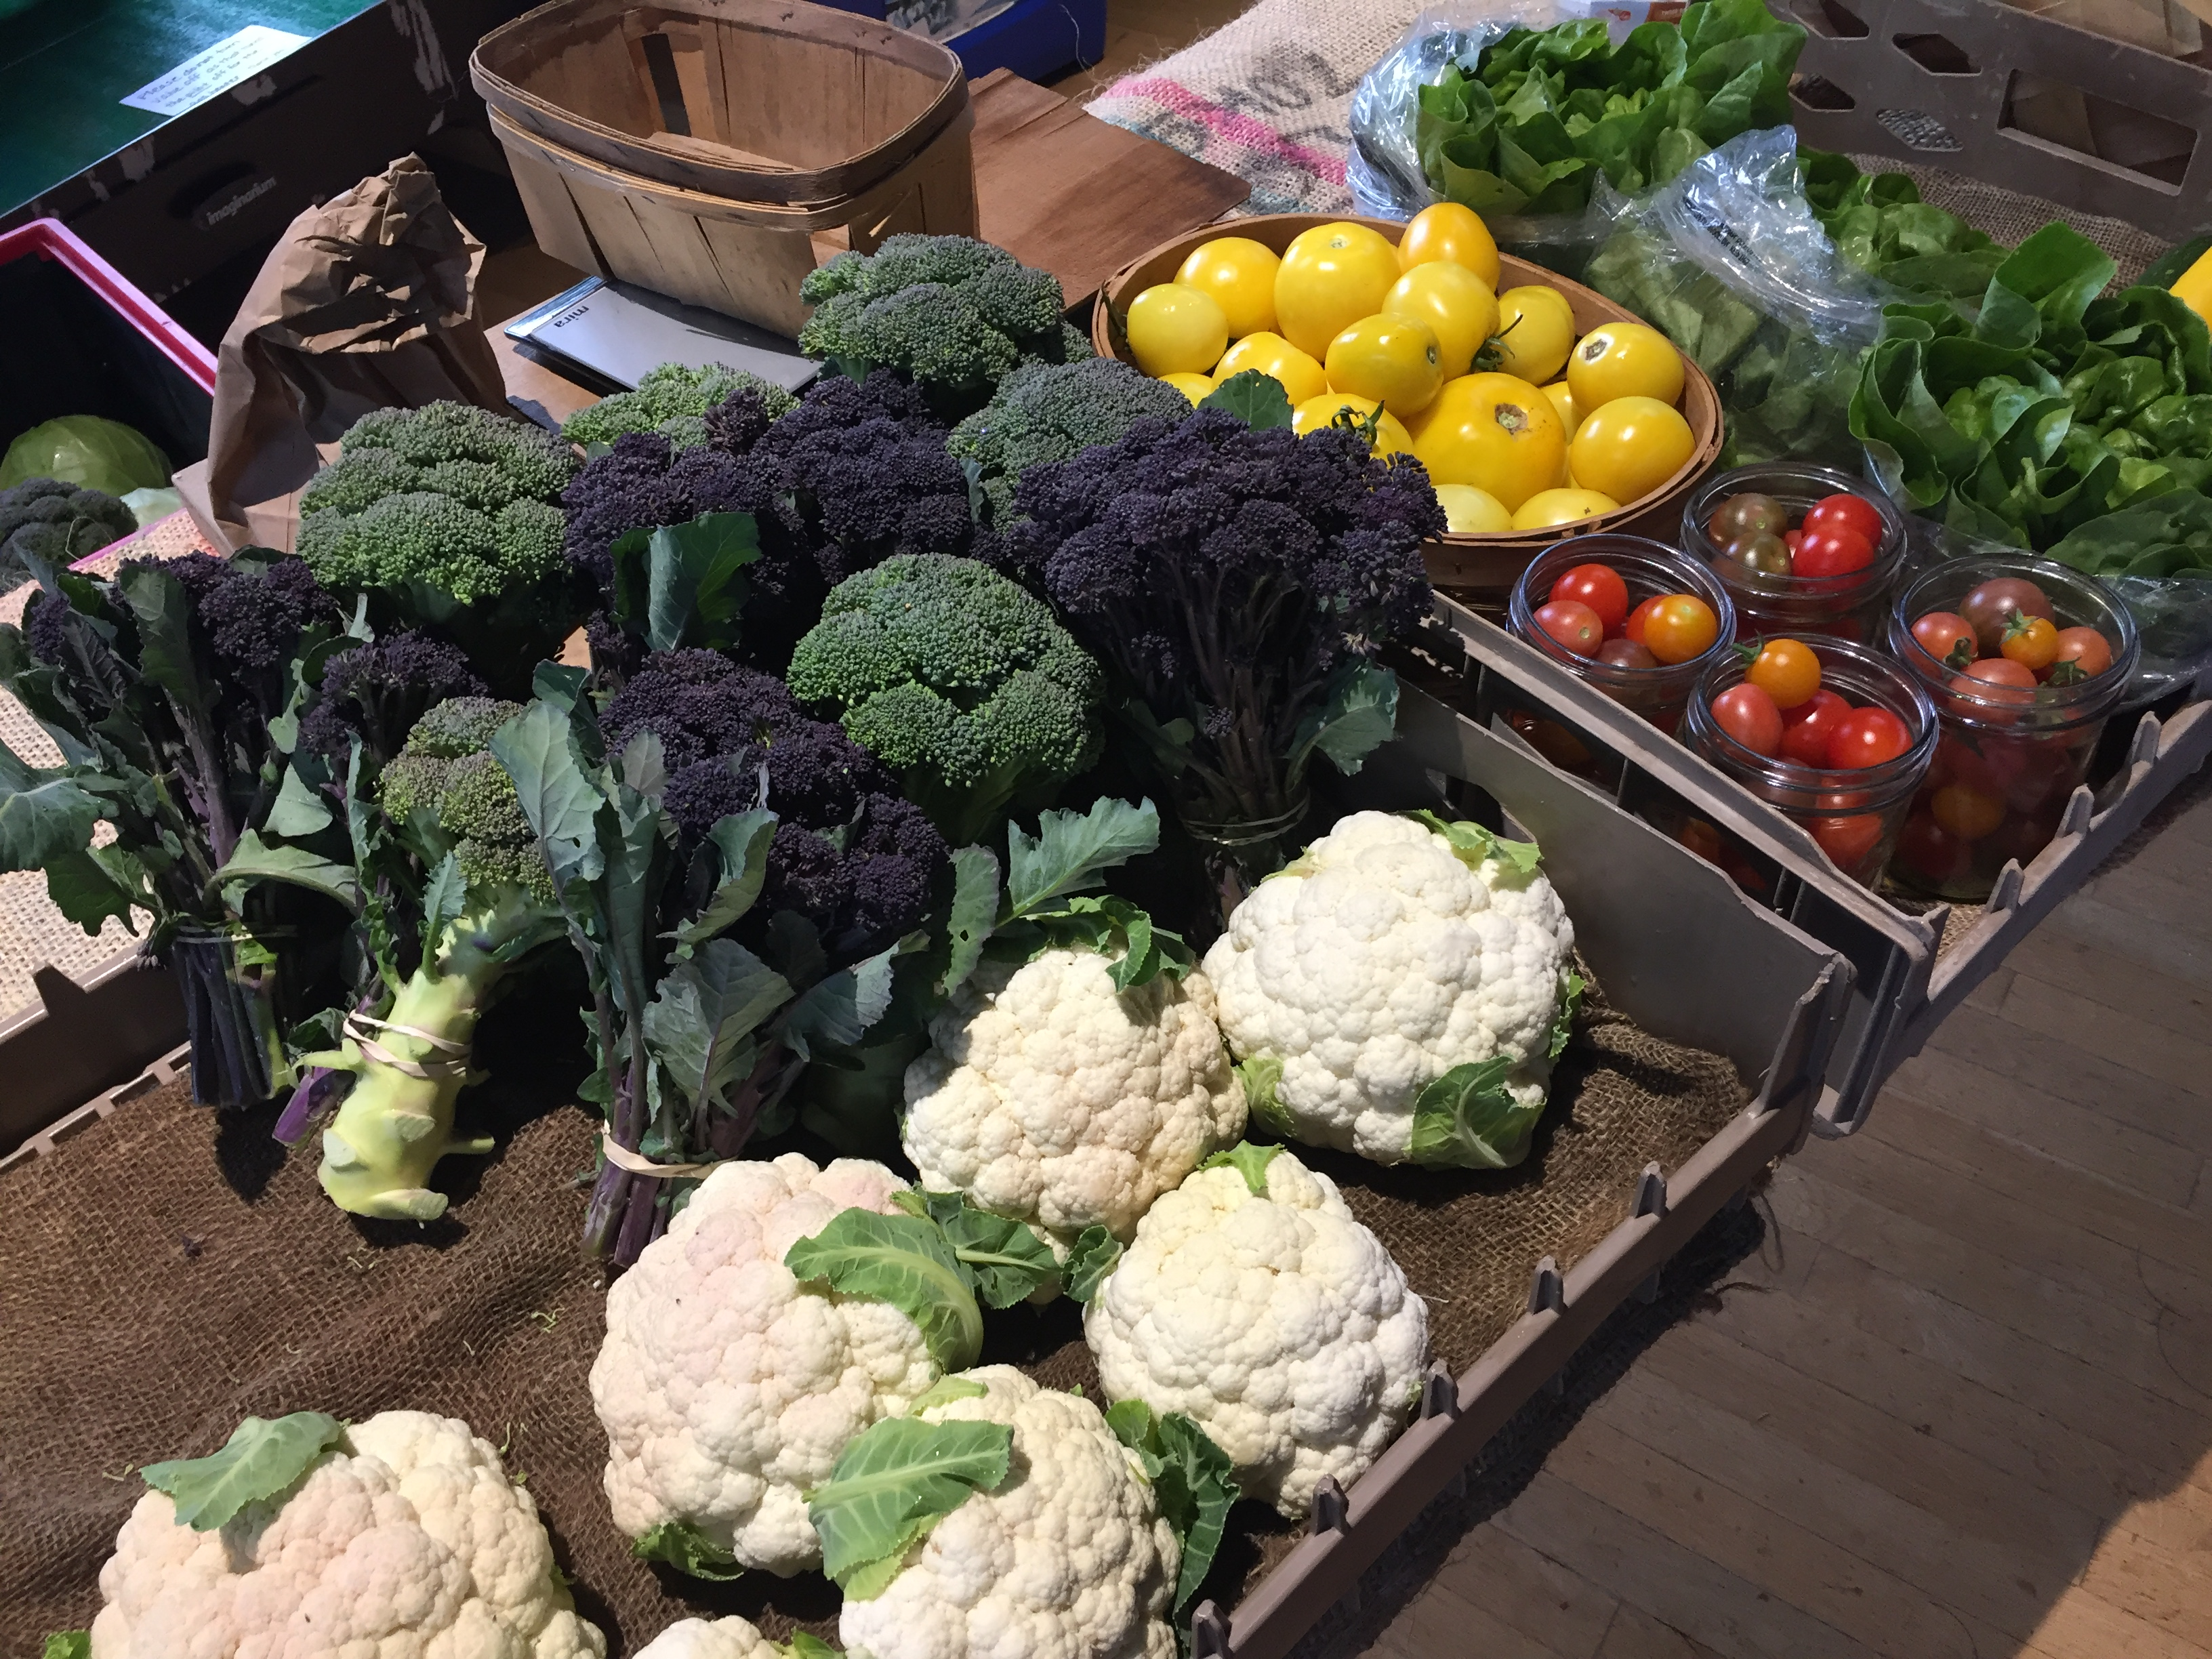 The Local Food Market offers a wide variety of locally grown vegetables at the Community Center from 4:30-6 p.m. Thursday.